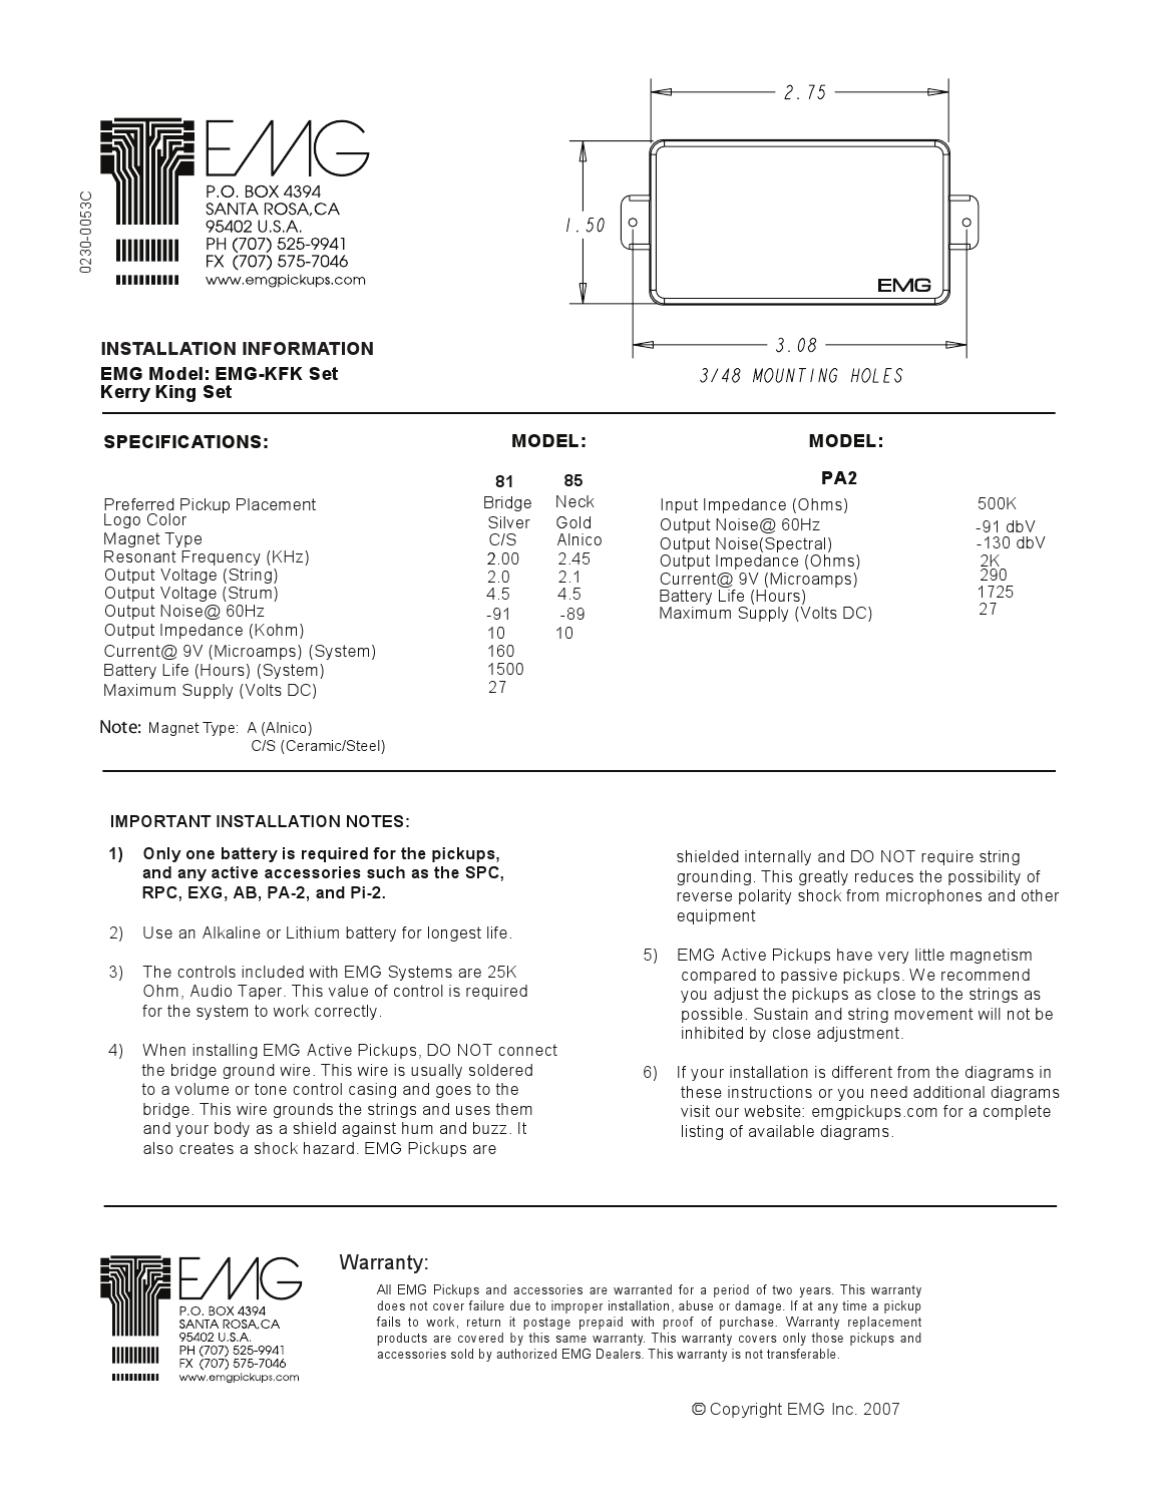 Duncan Designed Hb 103 Wiring Diagram Diagrams Com Wire Nordynue For Jd 2640 2755 Humbucker Pickup Seymour